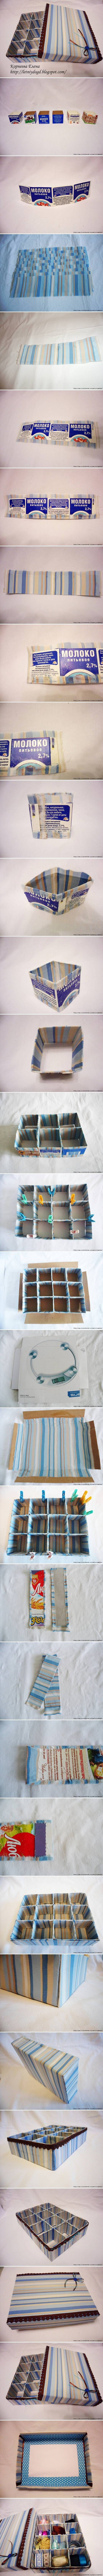 DIY Organizer with Divider. What a simple, sensible way to cover the dividers with fabric!